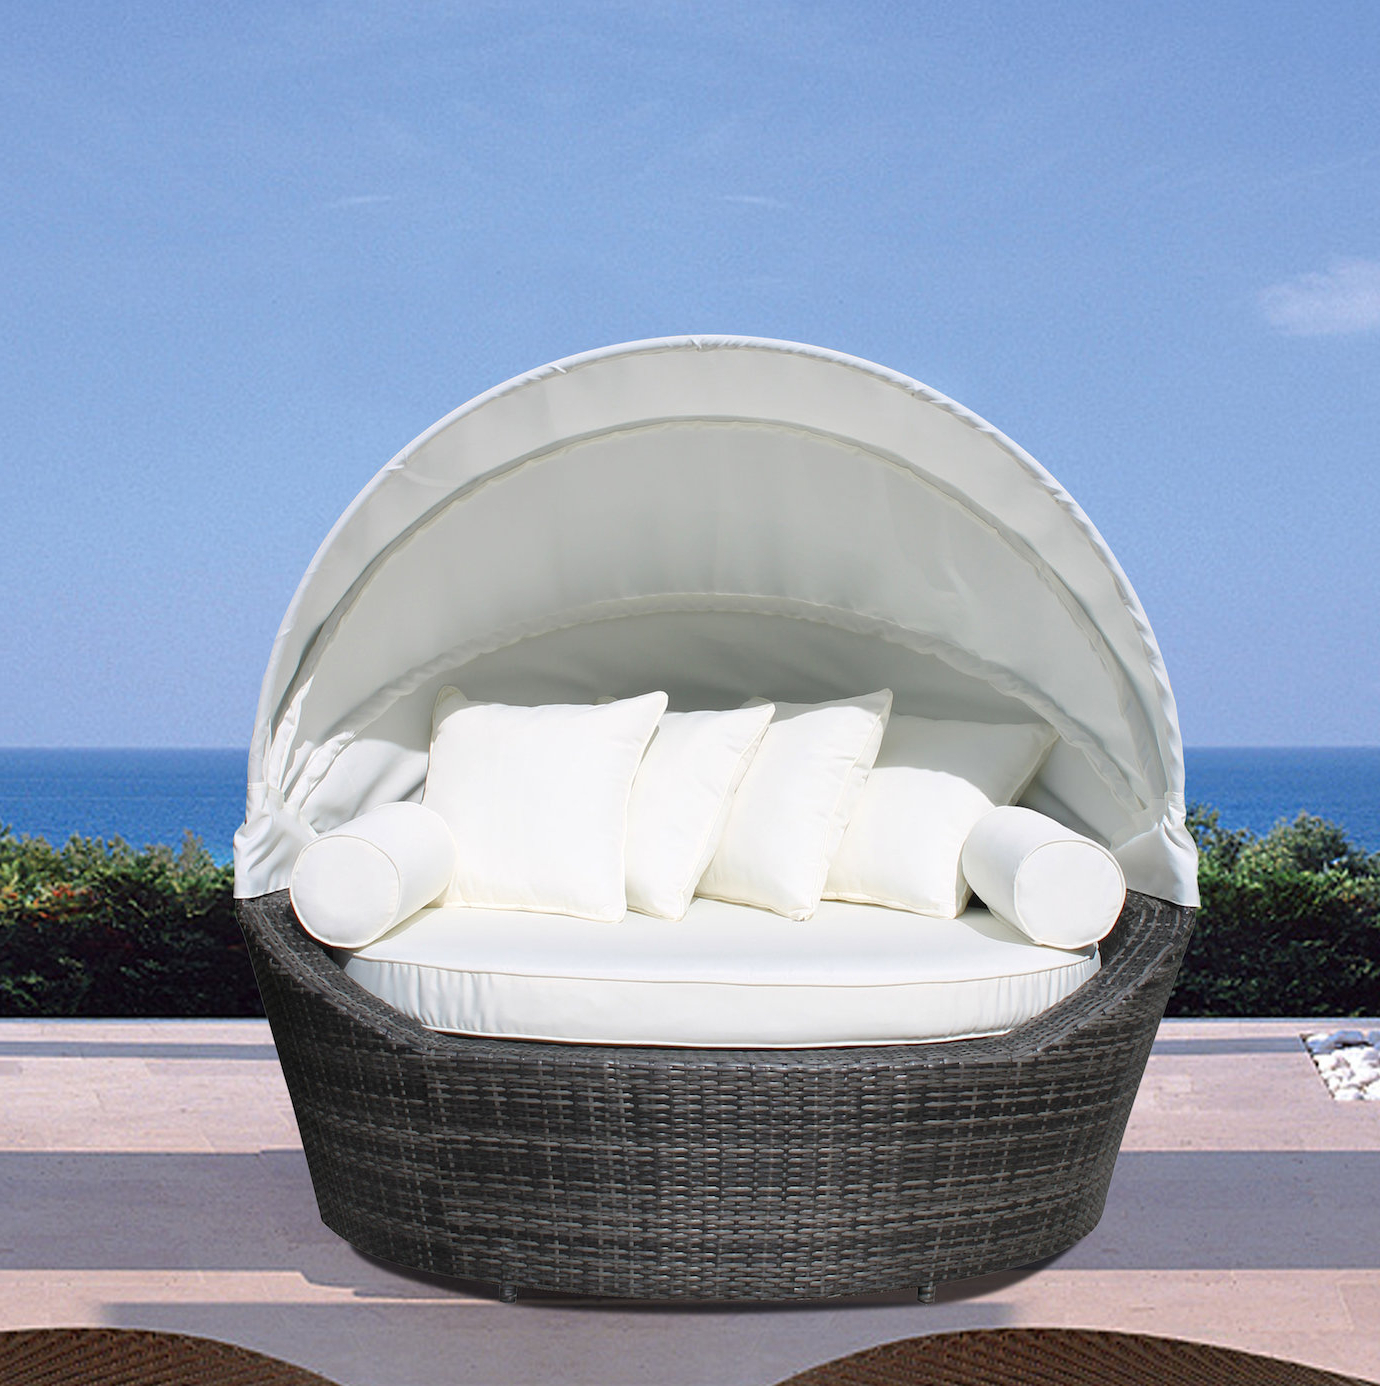 Carrasco Patio Daybed With Cushions With Regard To 2020 Carrasco Patio Daybeds With Cushions (View 7 of 20)